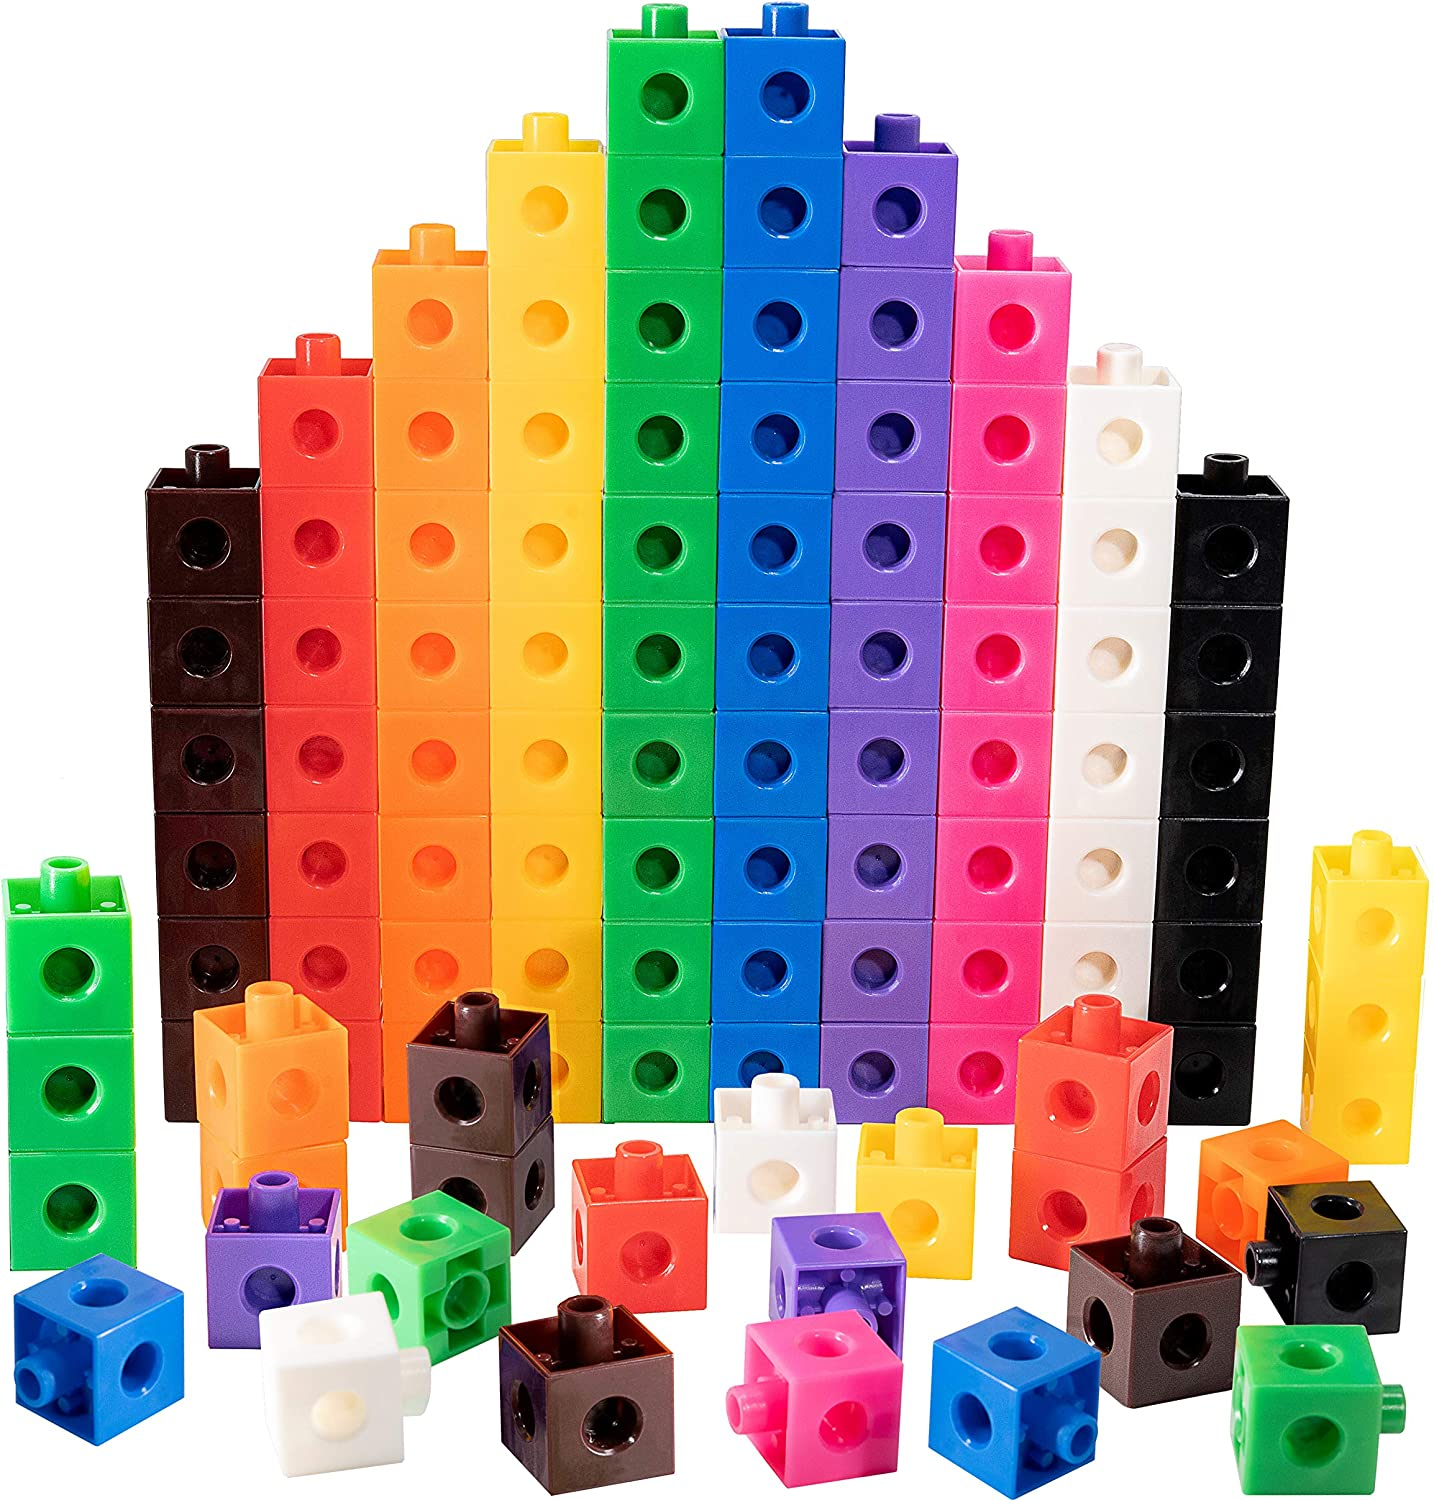 TOYLI 100 Piece Linking Cubes Set for Counting, Sorting, STEM, Connecting Math Manipulatives Educational Toy for Preschool, Kindergarten, Homeschool